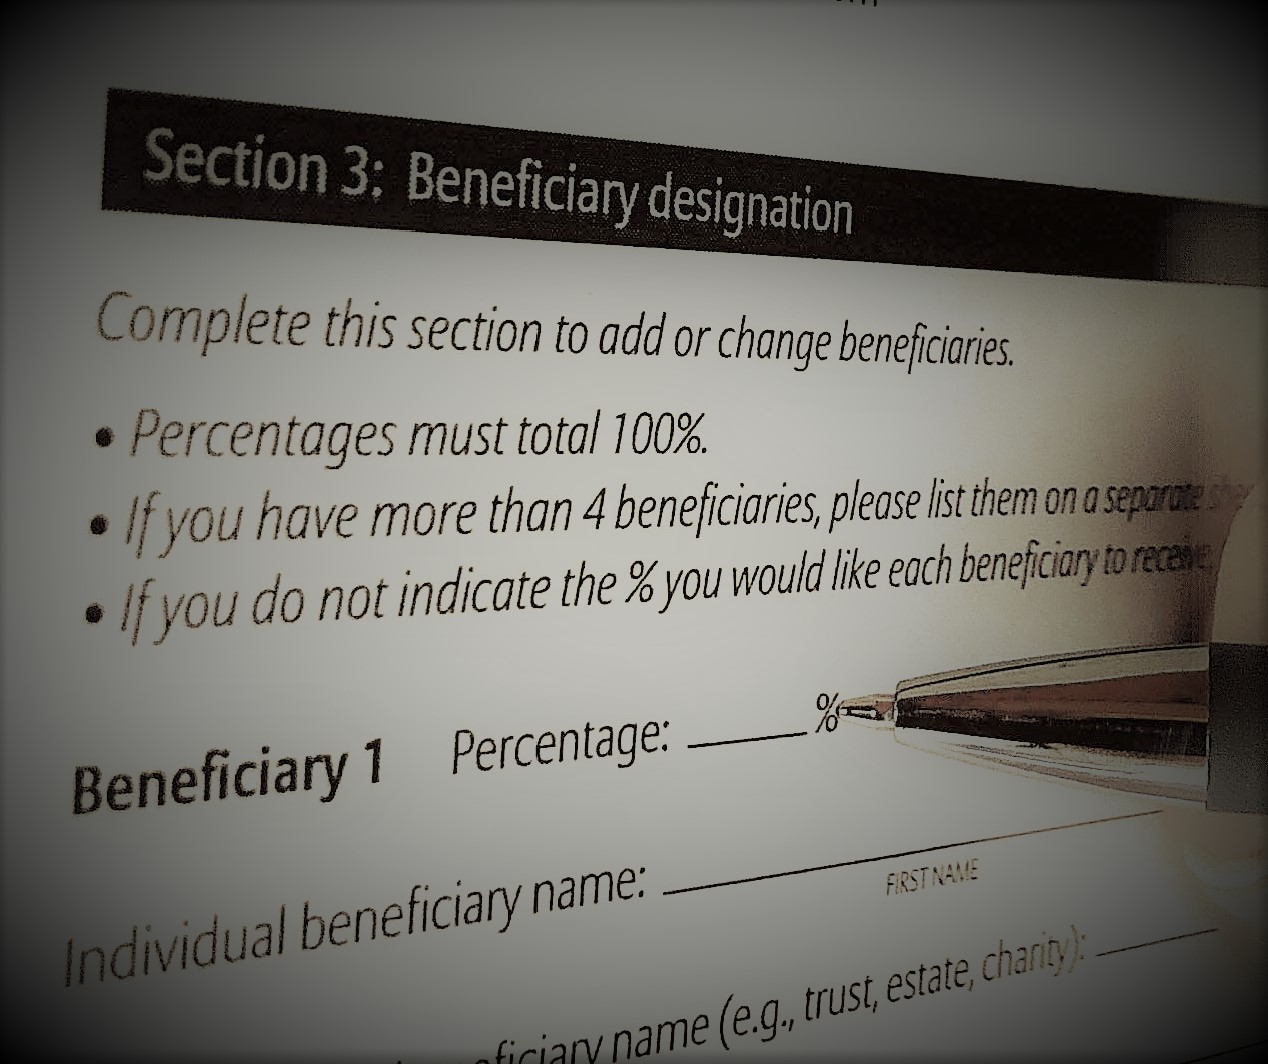 beneficiary designation.jpg